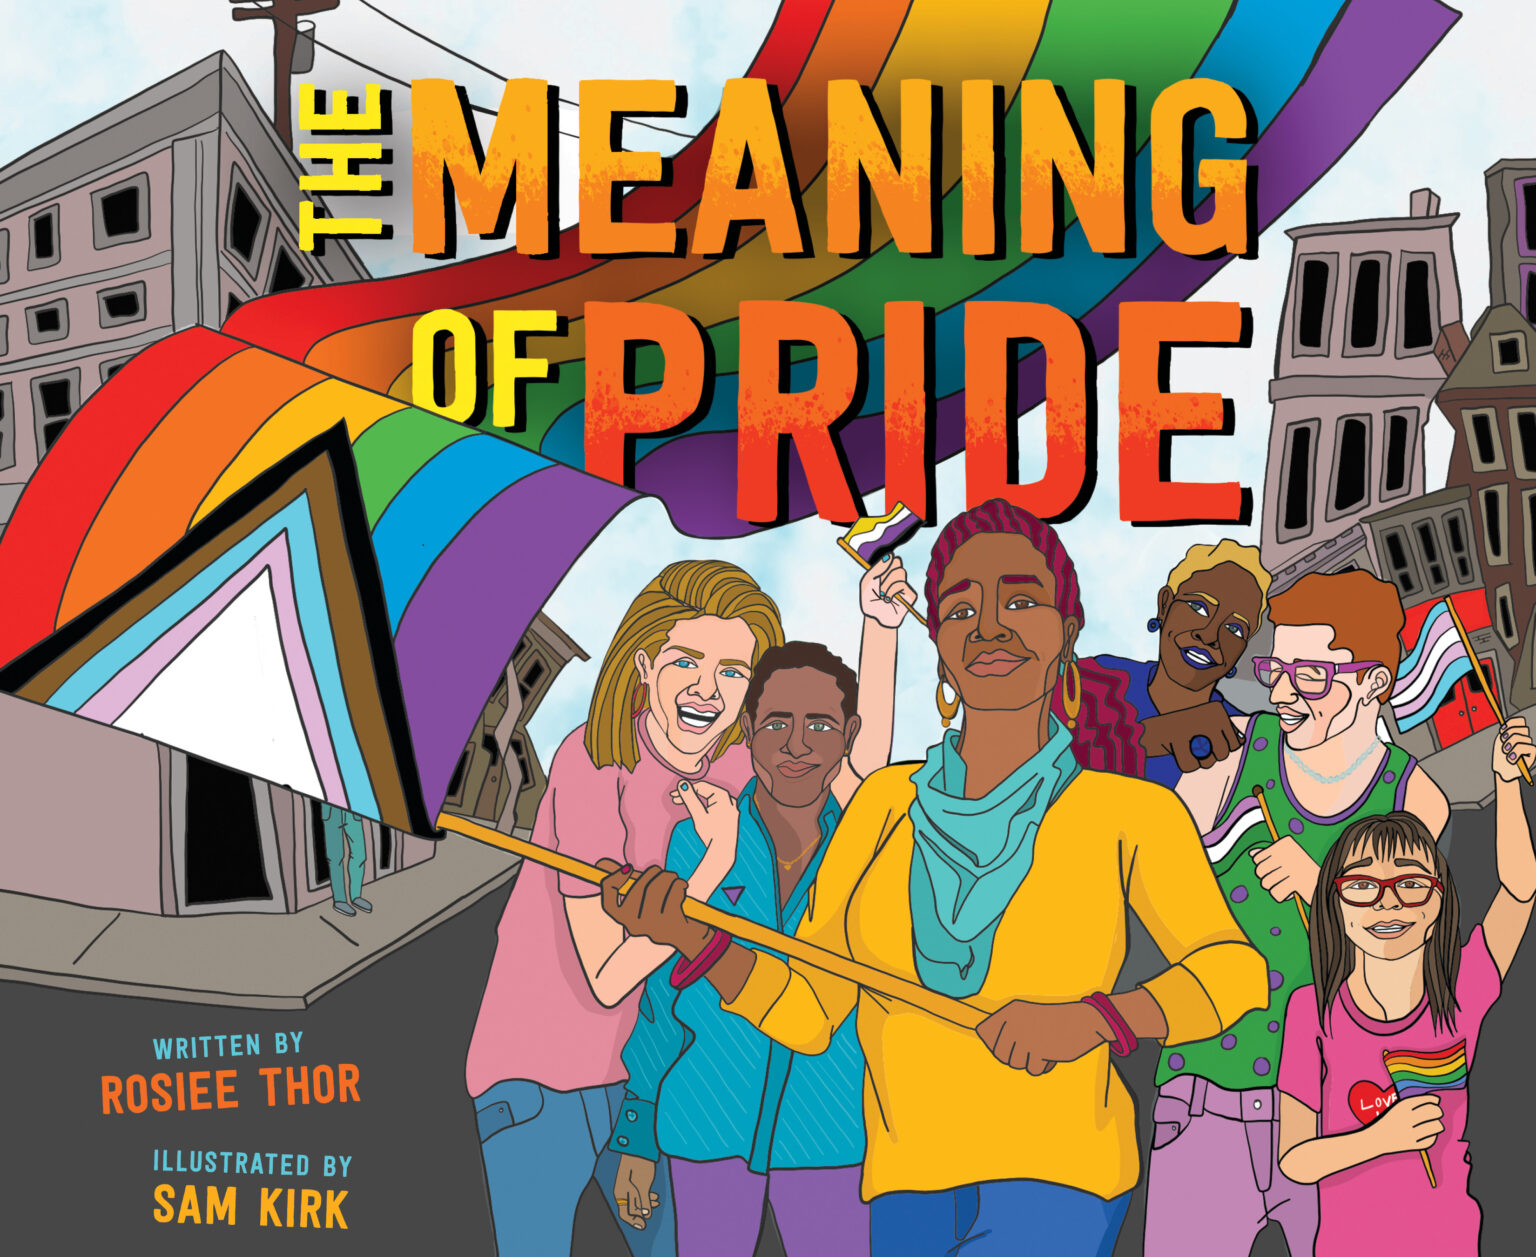 The Meaning of Pride